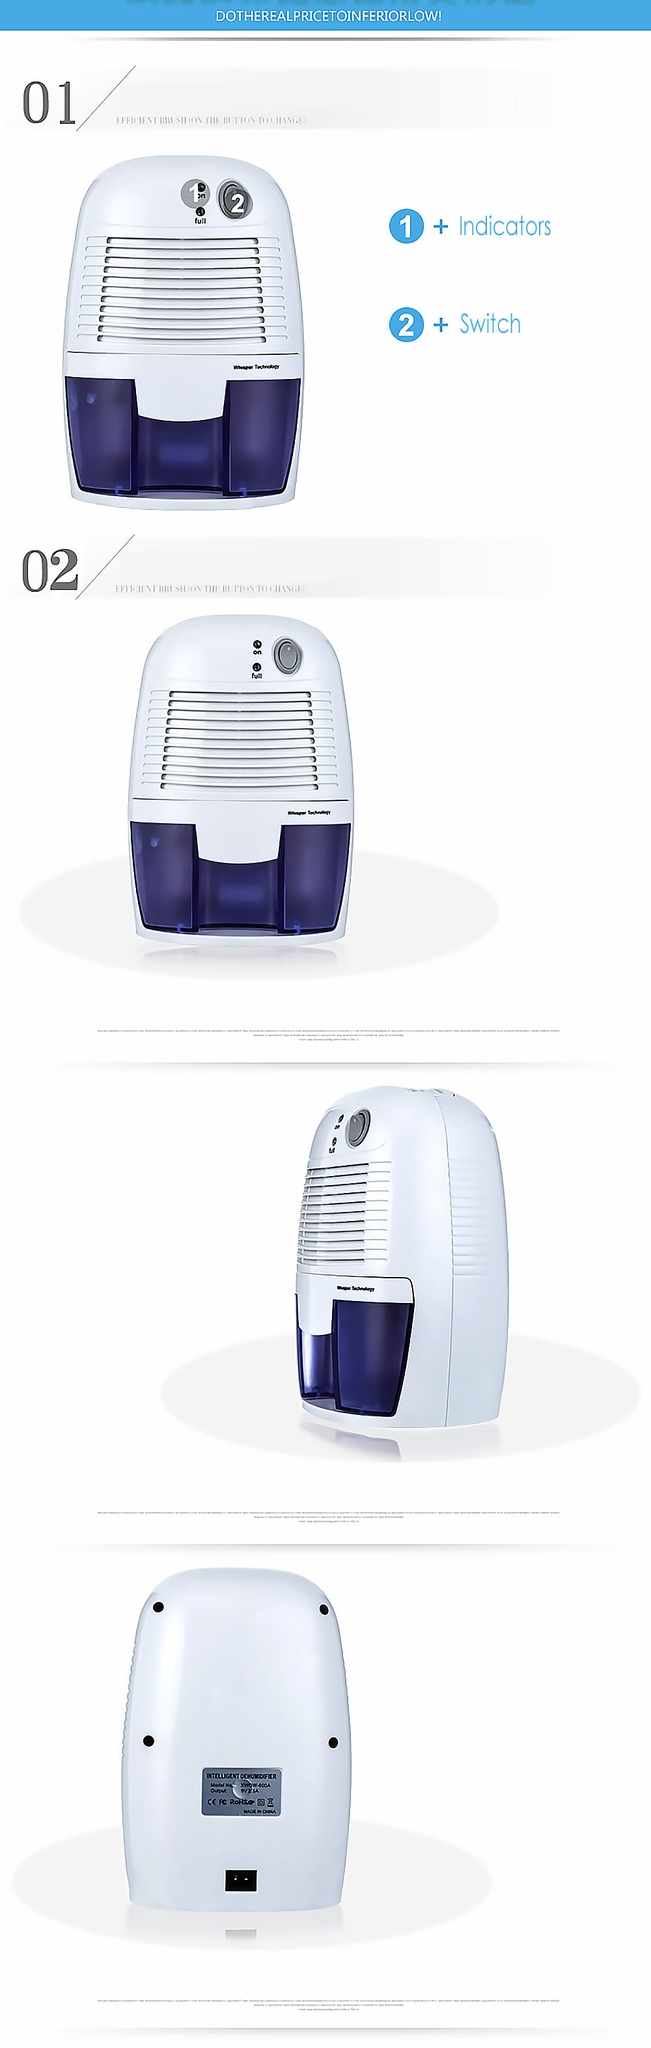 Xrow 600a Mini Air Dehumidifier Moisture Absorber With 500ml Water Tank For Home Bedroom